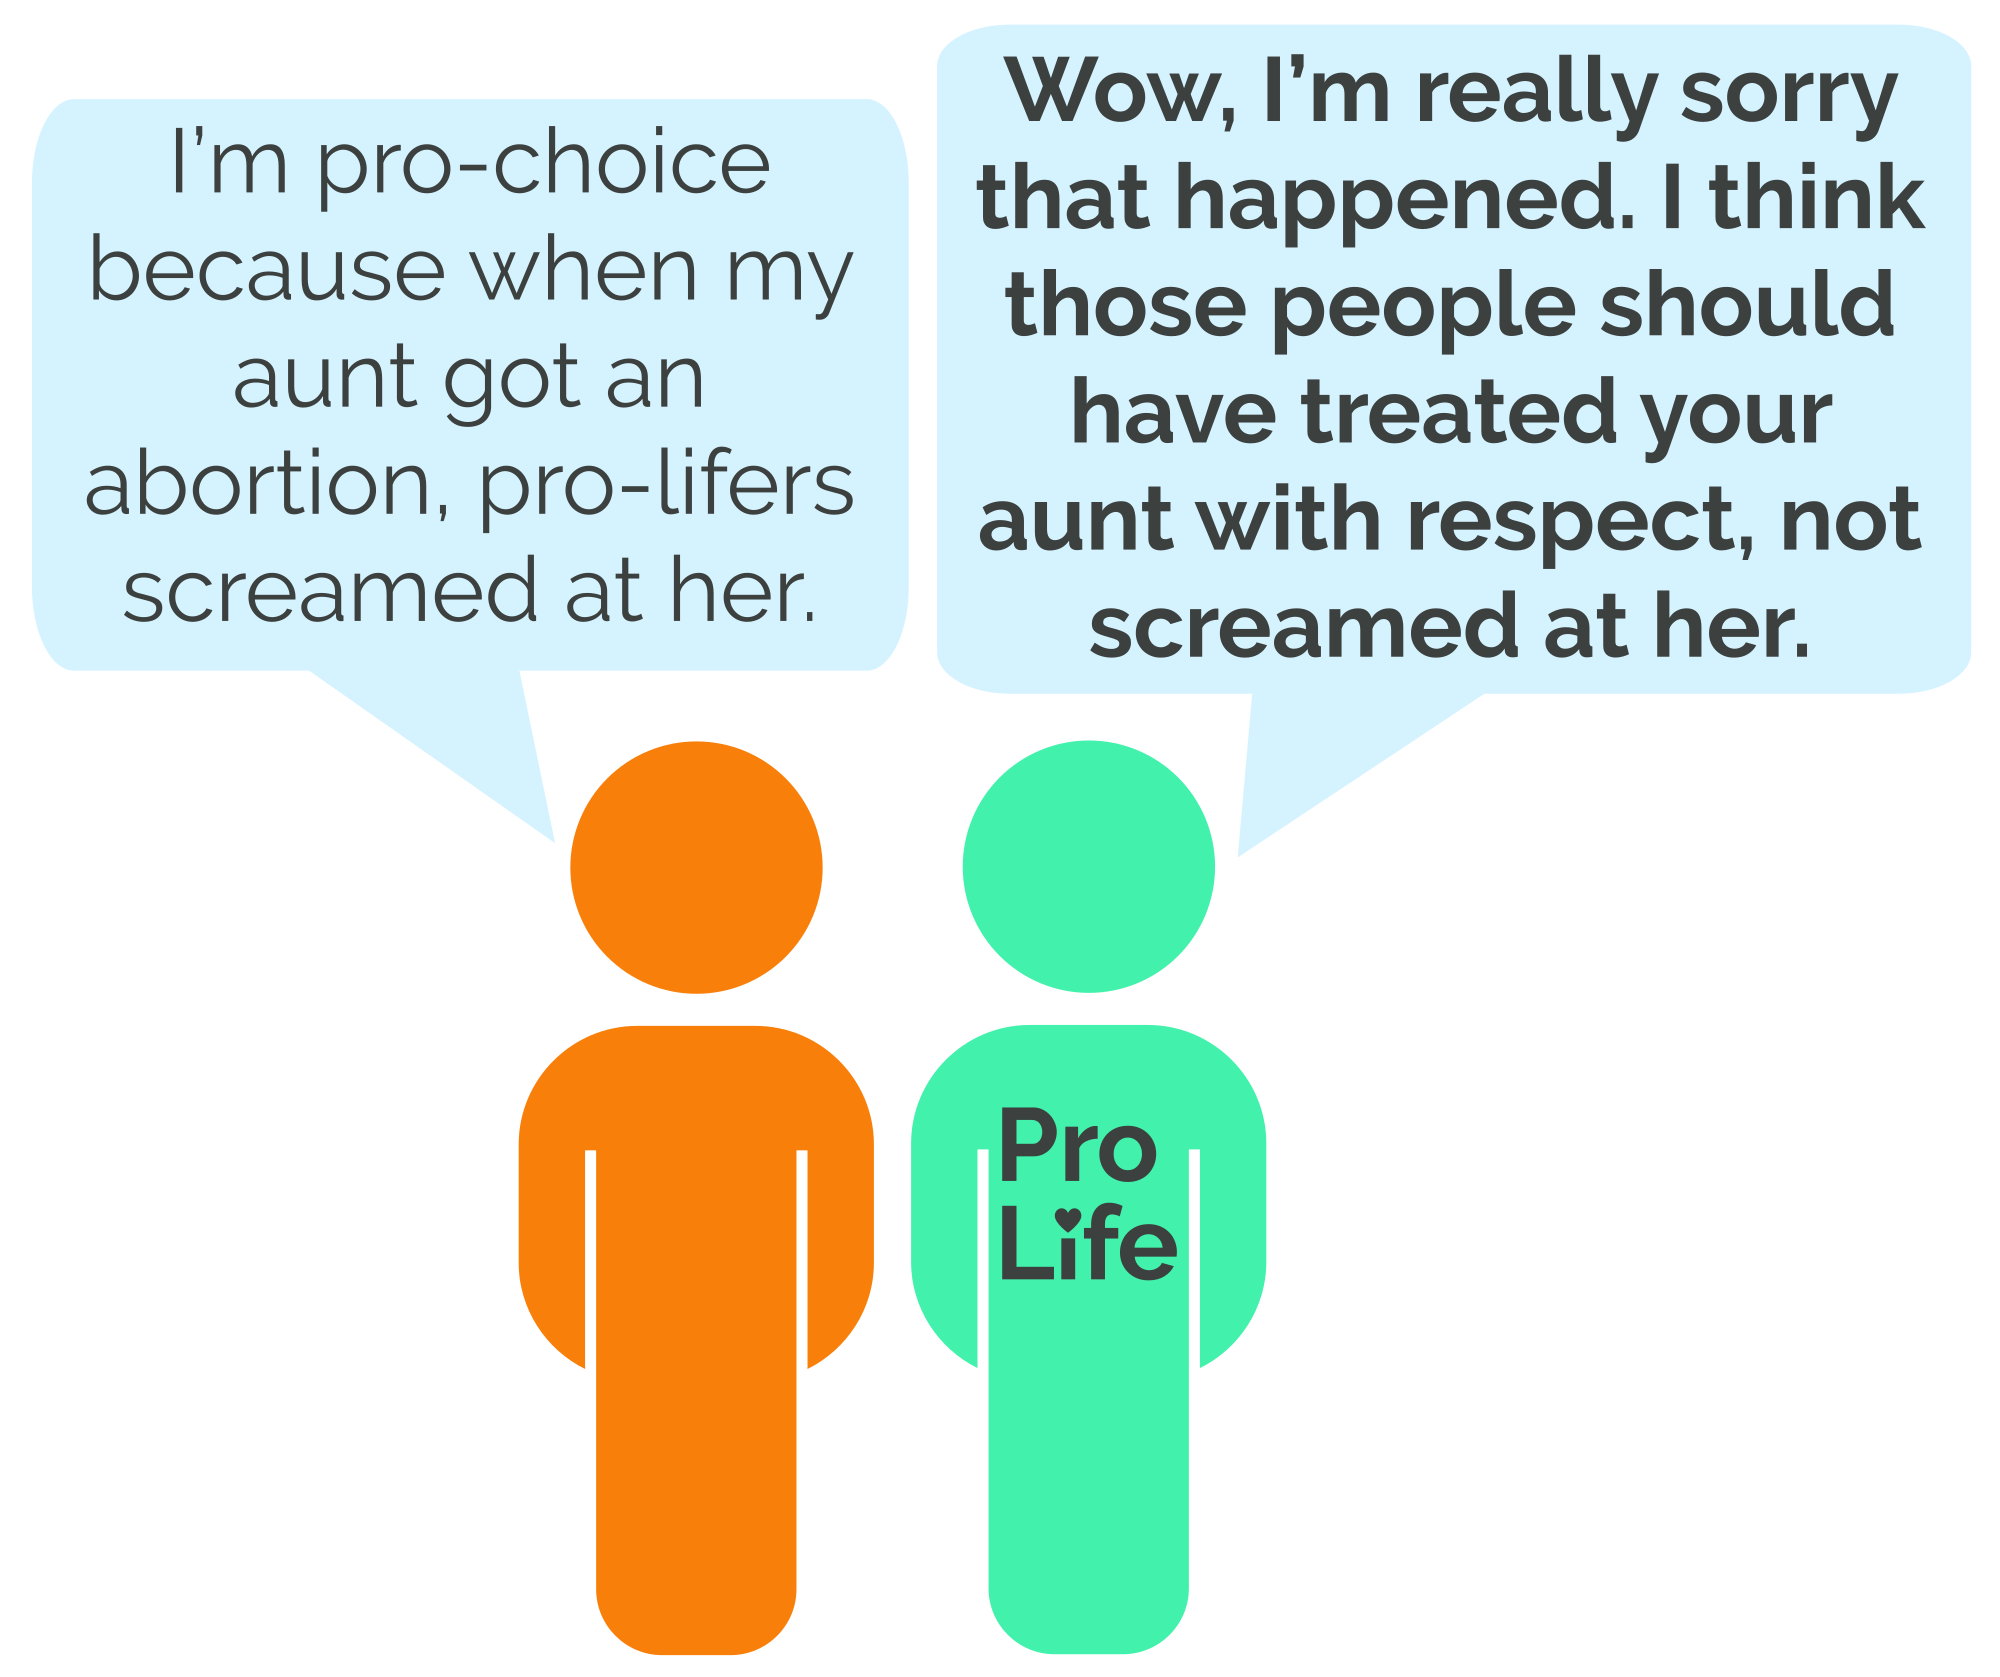 Person 1: I'm pro-choice because when my aunt got an abortion, pro-lifers screamed at her. Person 2 (our hero): Wow, I'm really sorry that happened. I think those people should have treated your aunt with respect, not screamed at her.